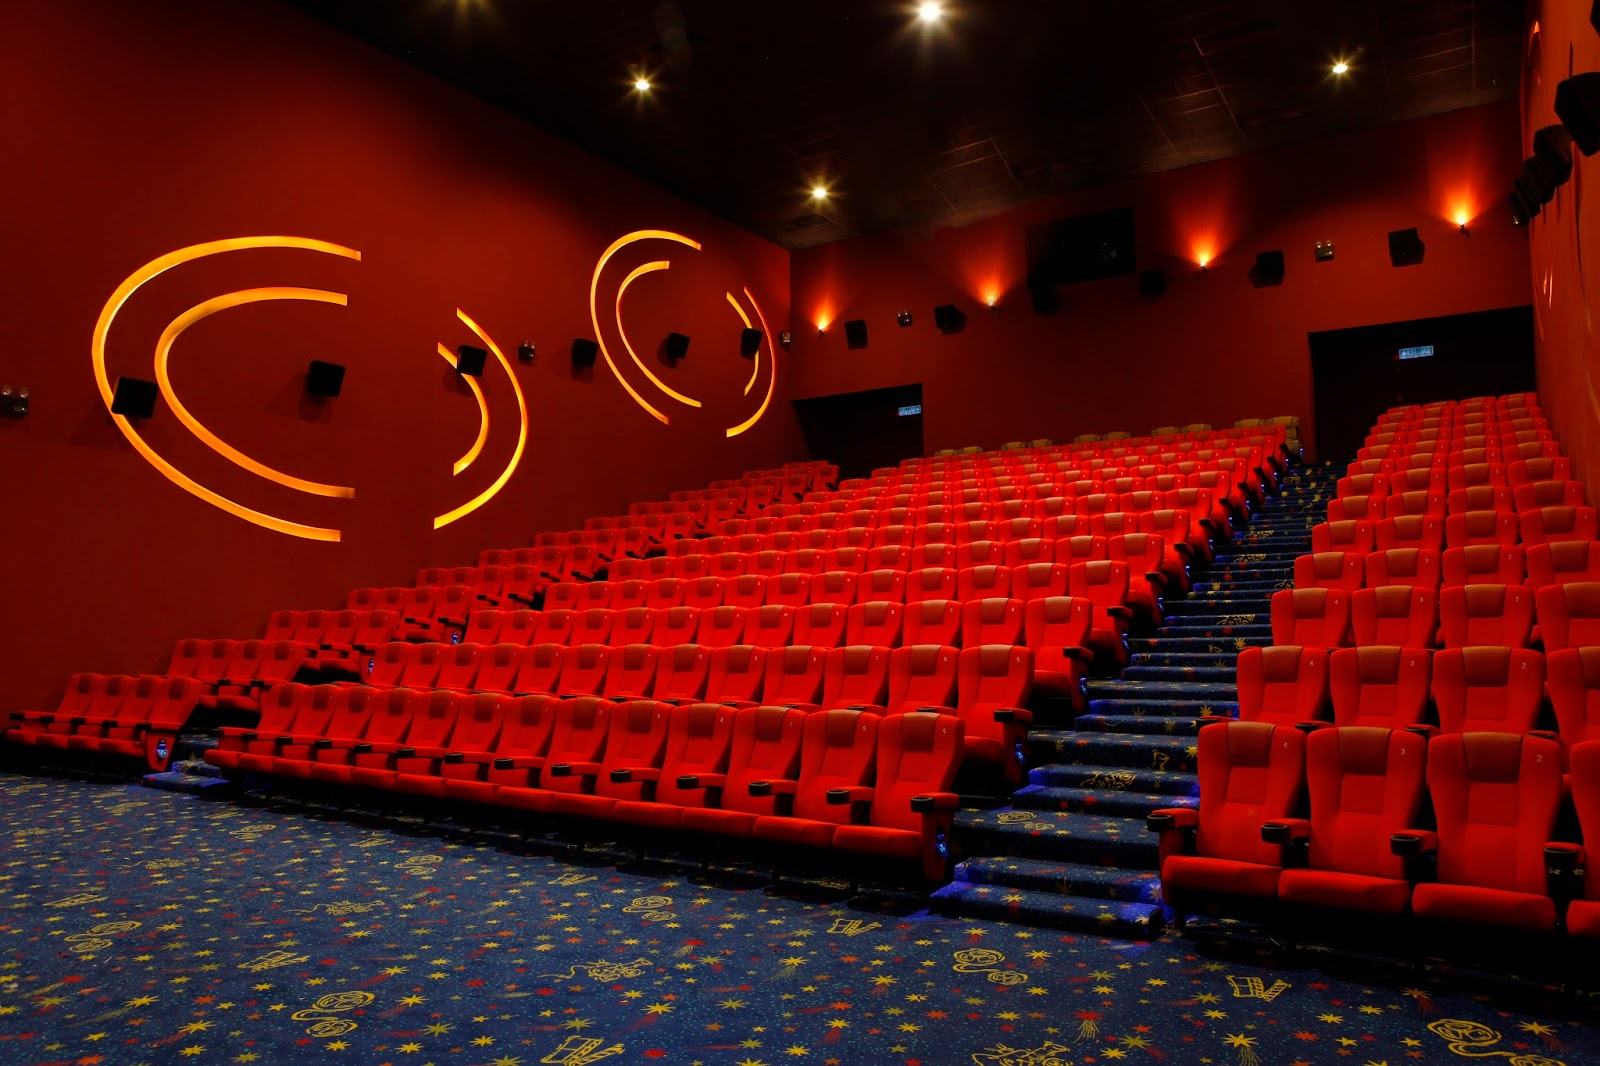 539 words essay on a to a cinema hall